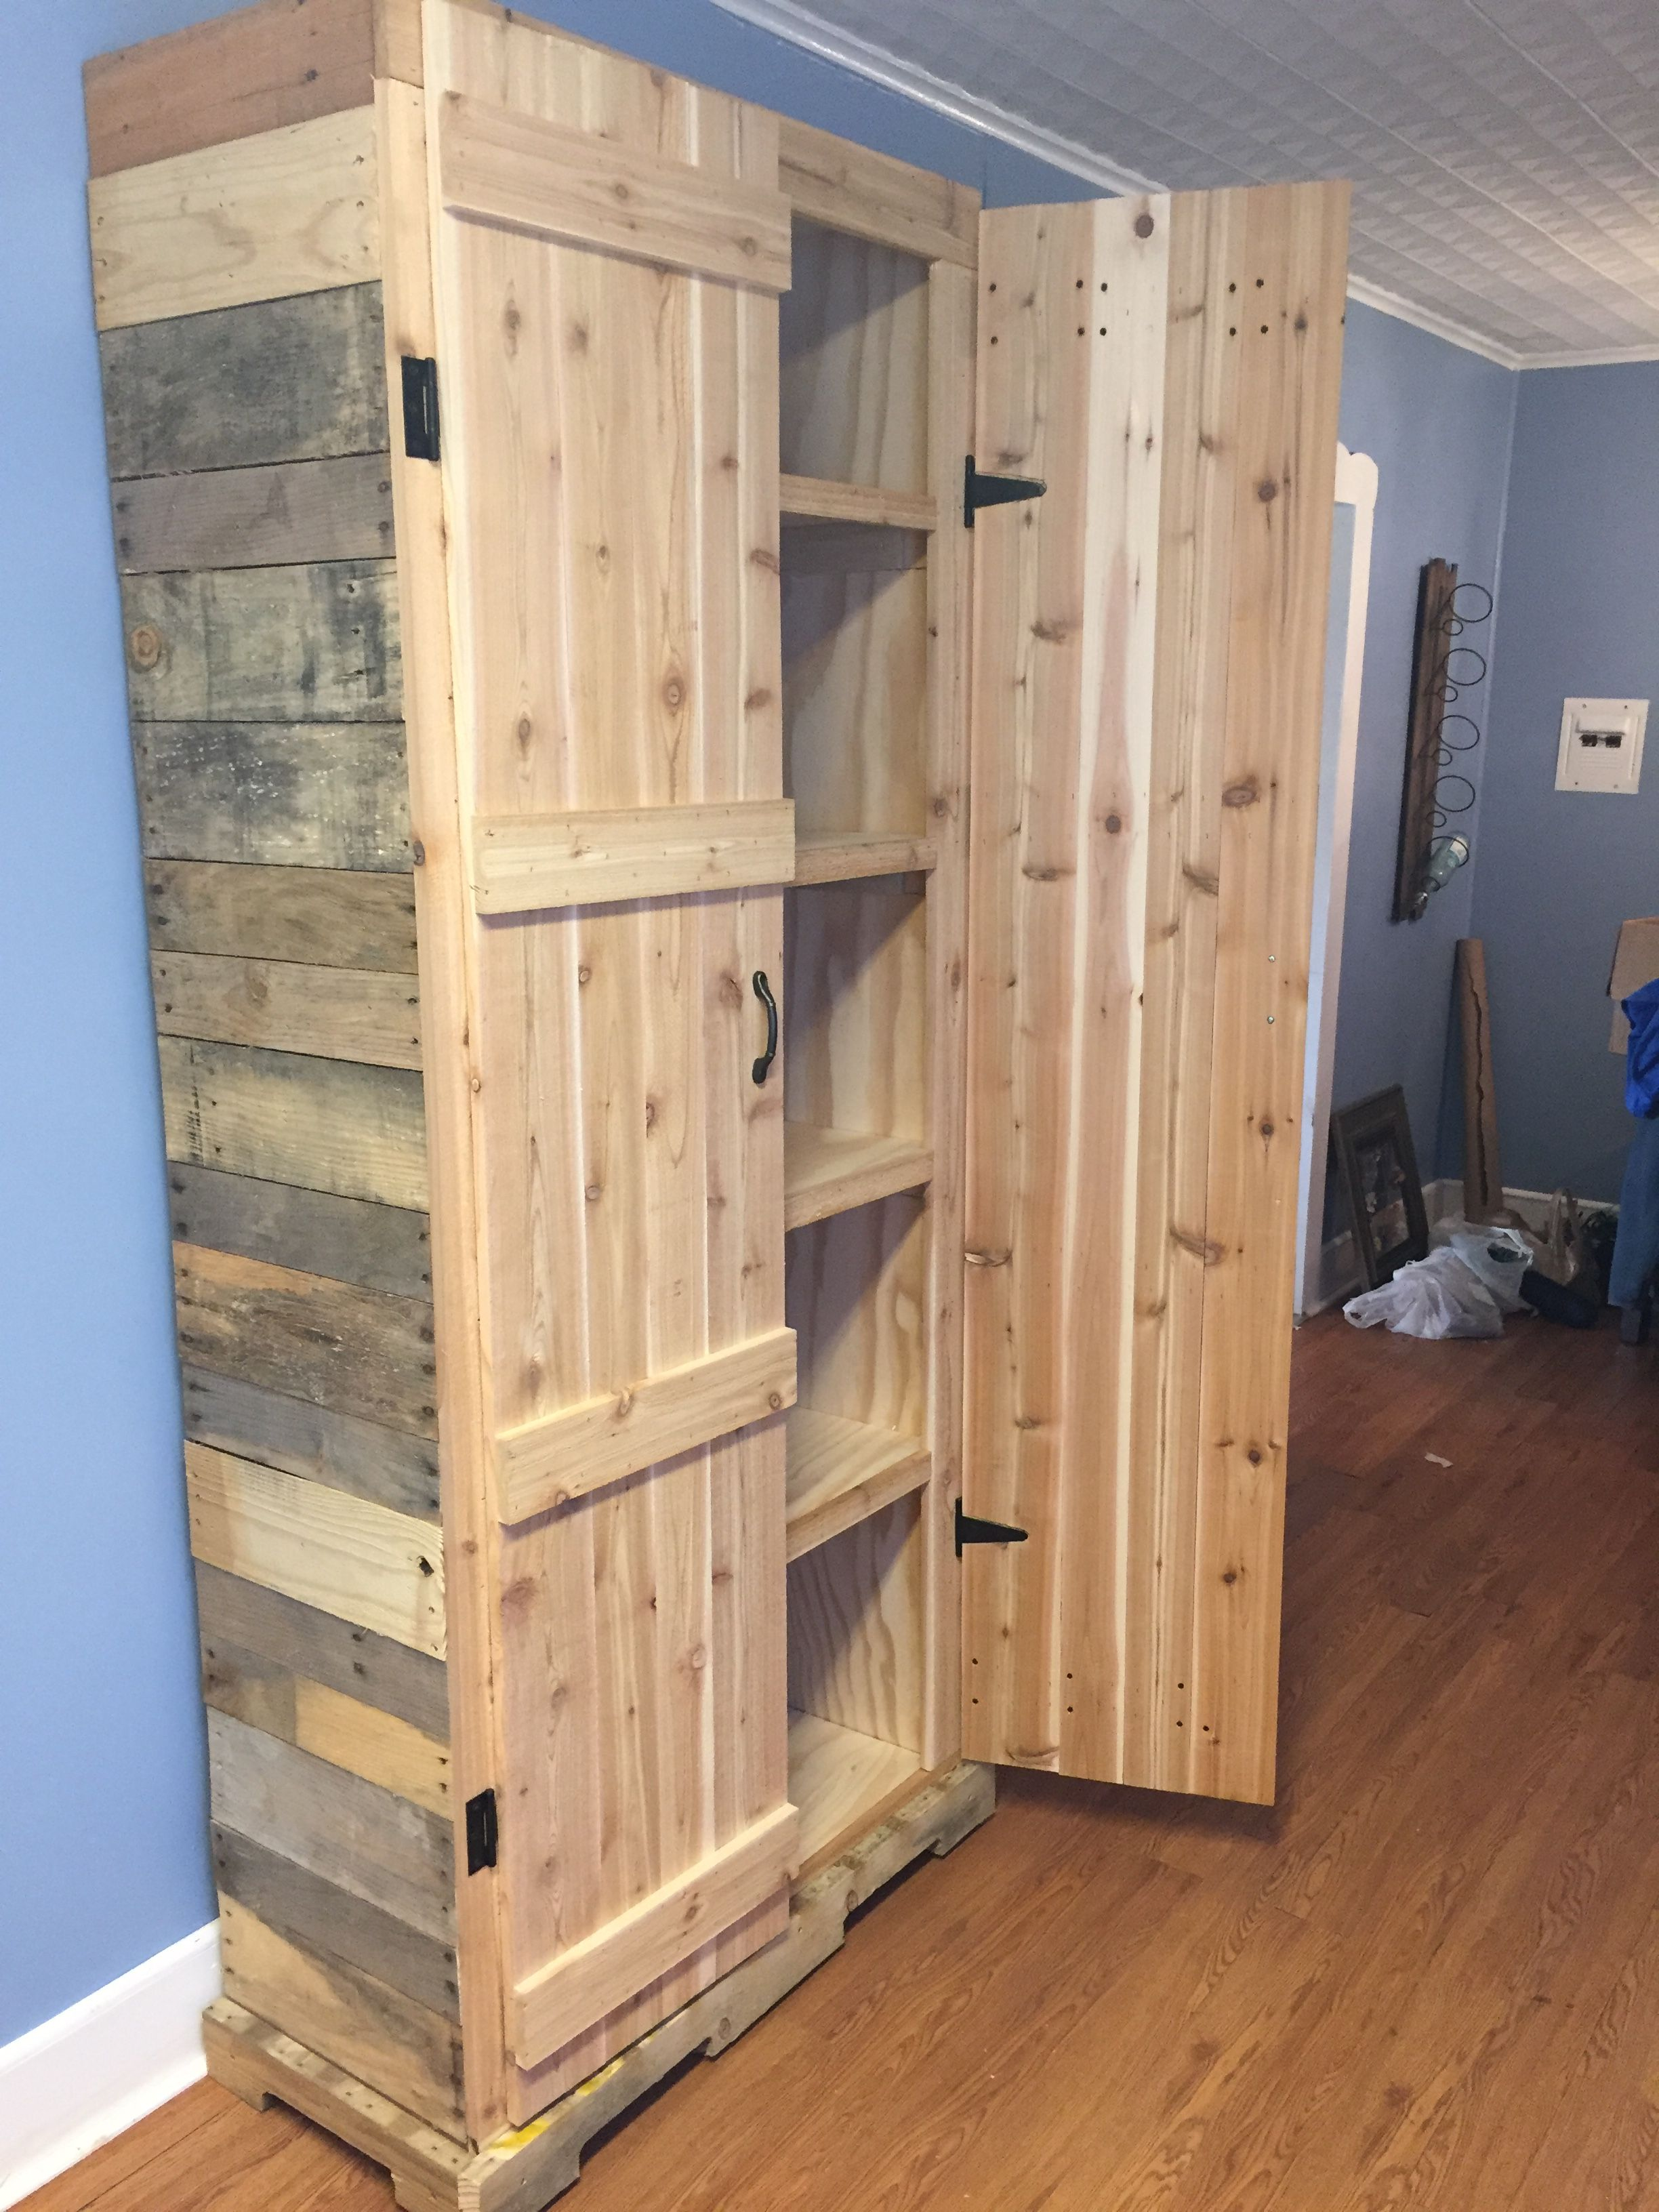 Pallet Pantry Wooden Pallet Projects Pallet Pantry Wood Pallet